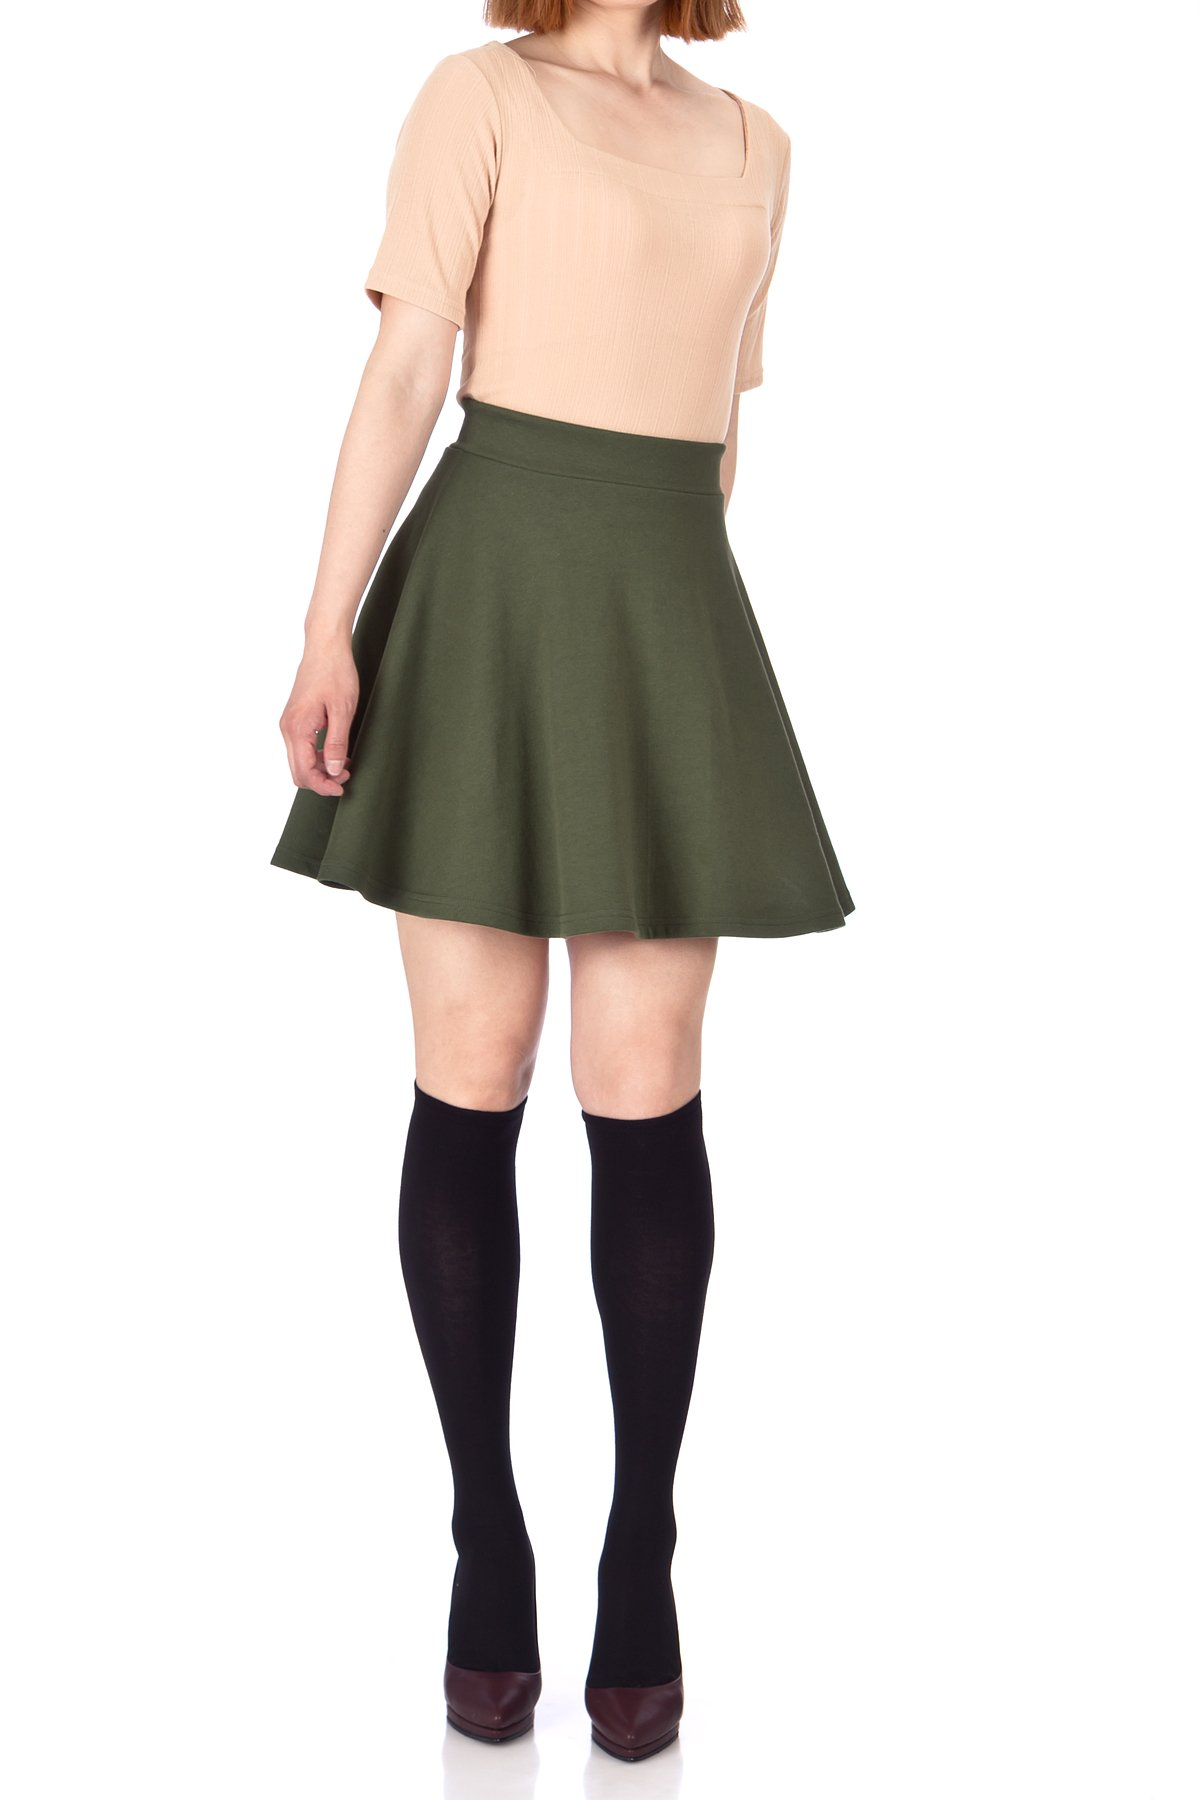 Basic Solid Stretchy Cotton High Waist line Flared Skater Mini Skirt Khaki 03